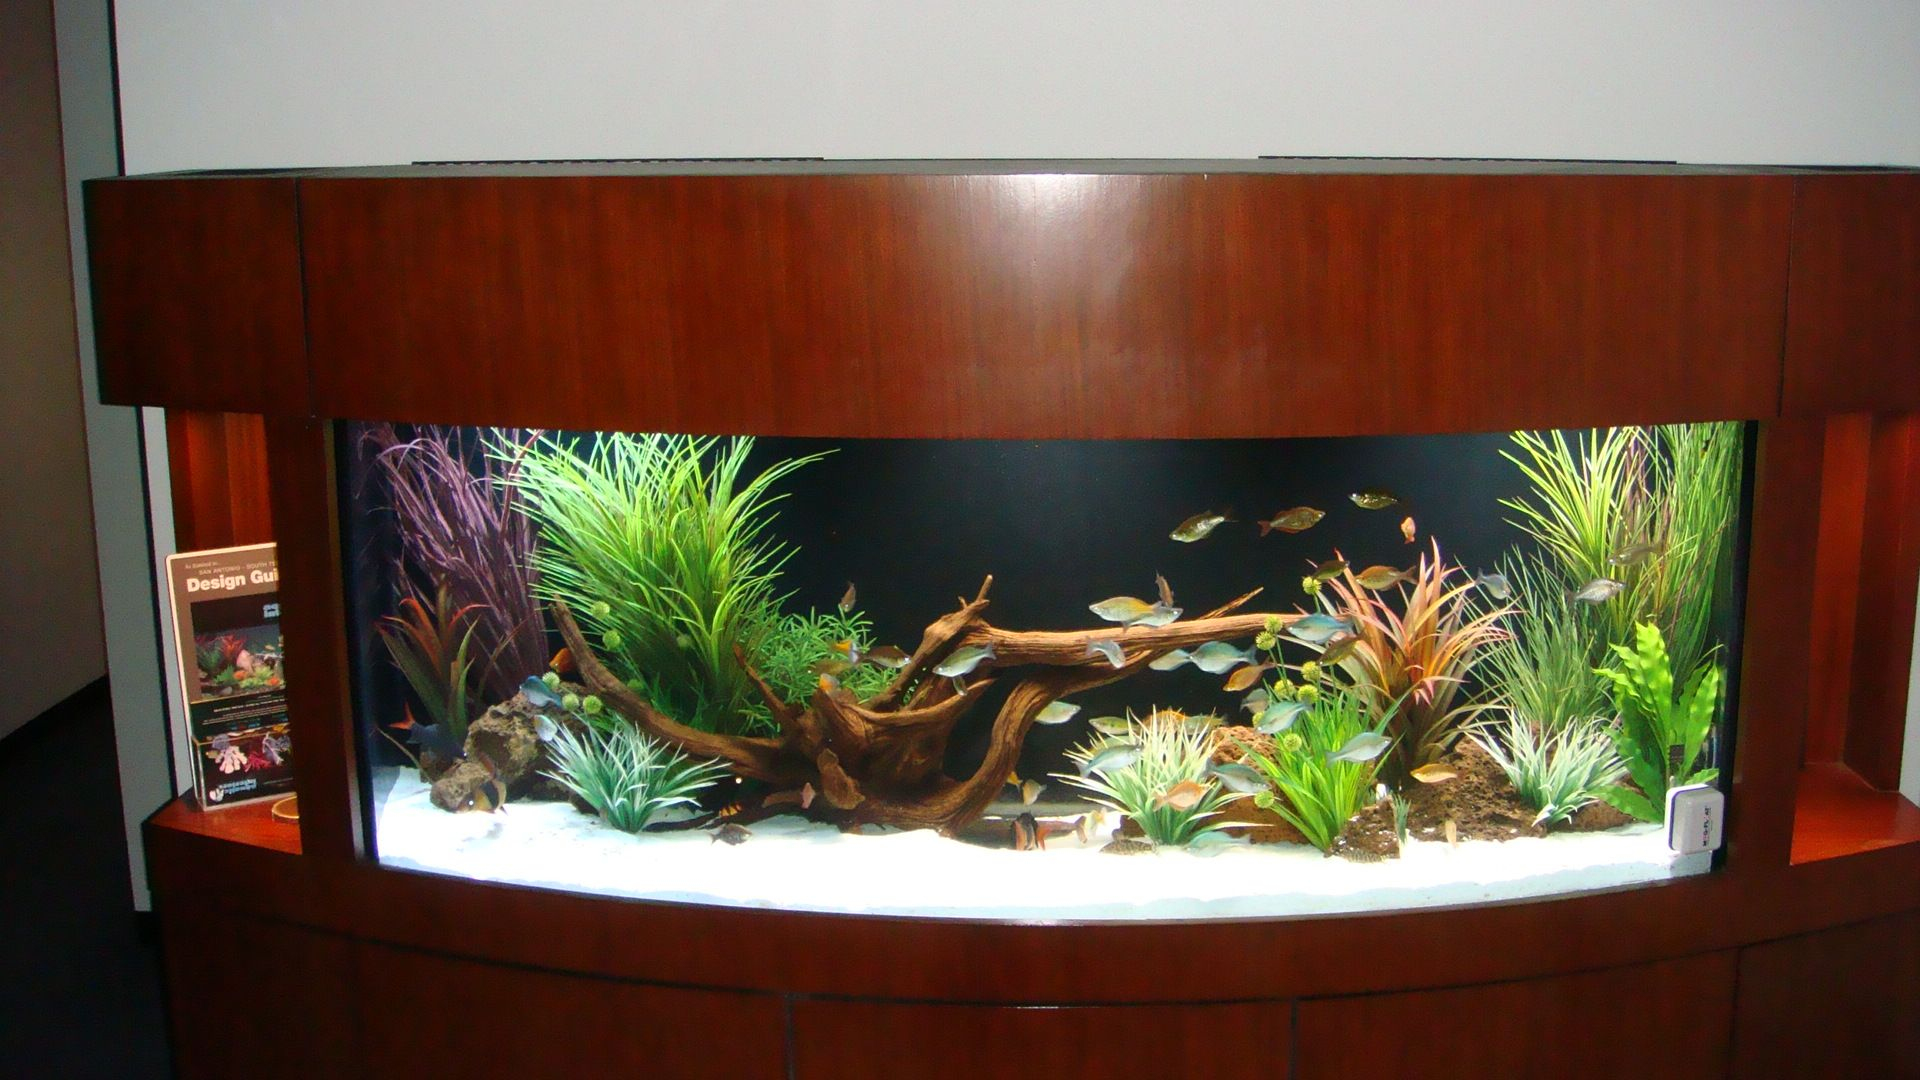 Transform the way your home looks using a fish tank fish for How to decorate fish tank